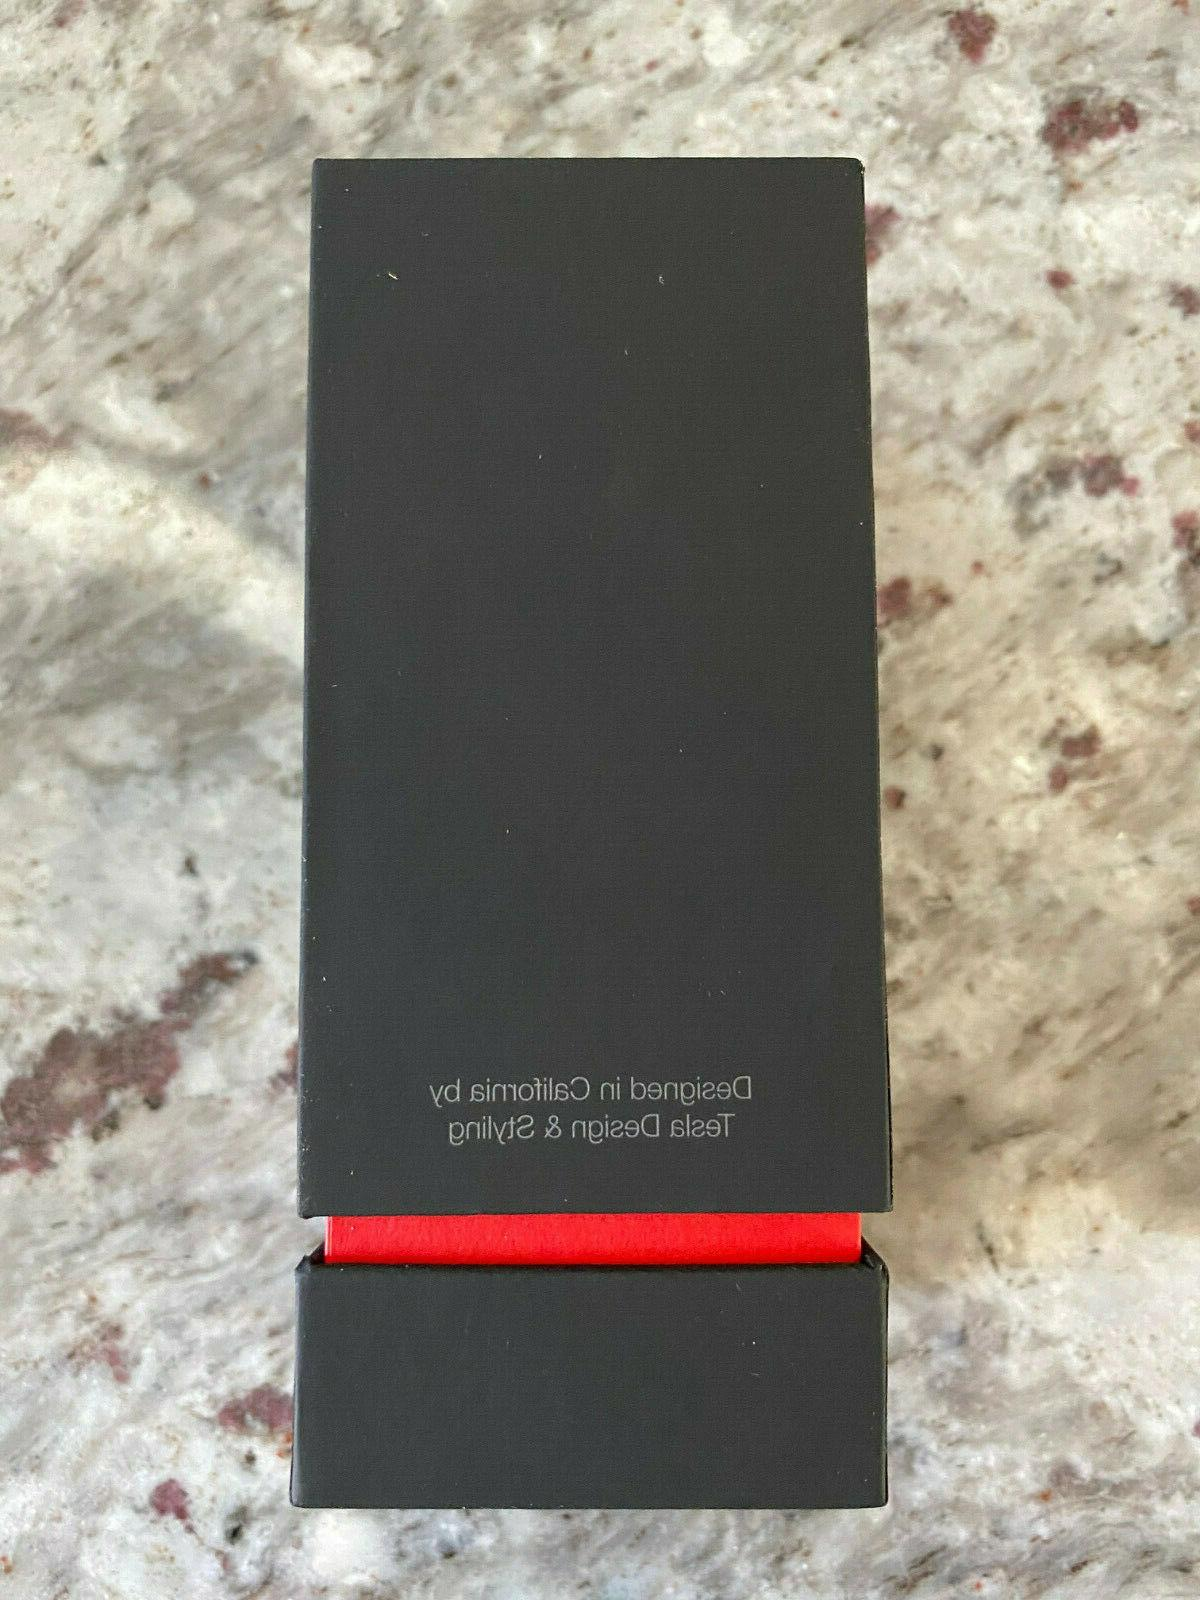 TESLA POWERBANK New in Box, Mobile Charger Micro USB iPhone